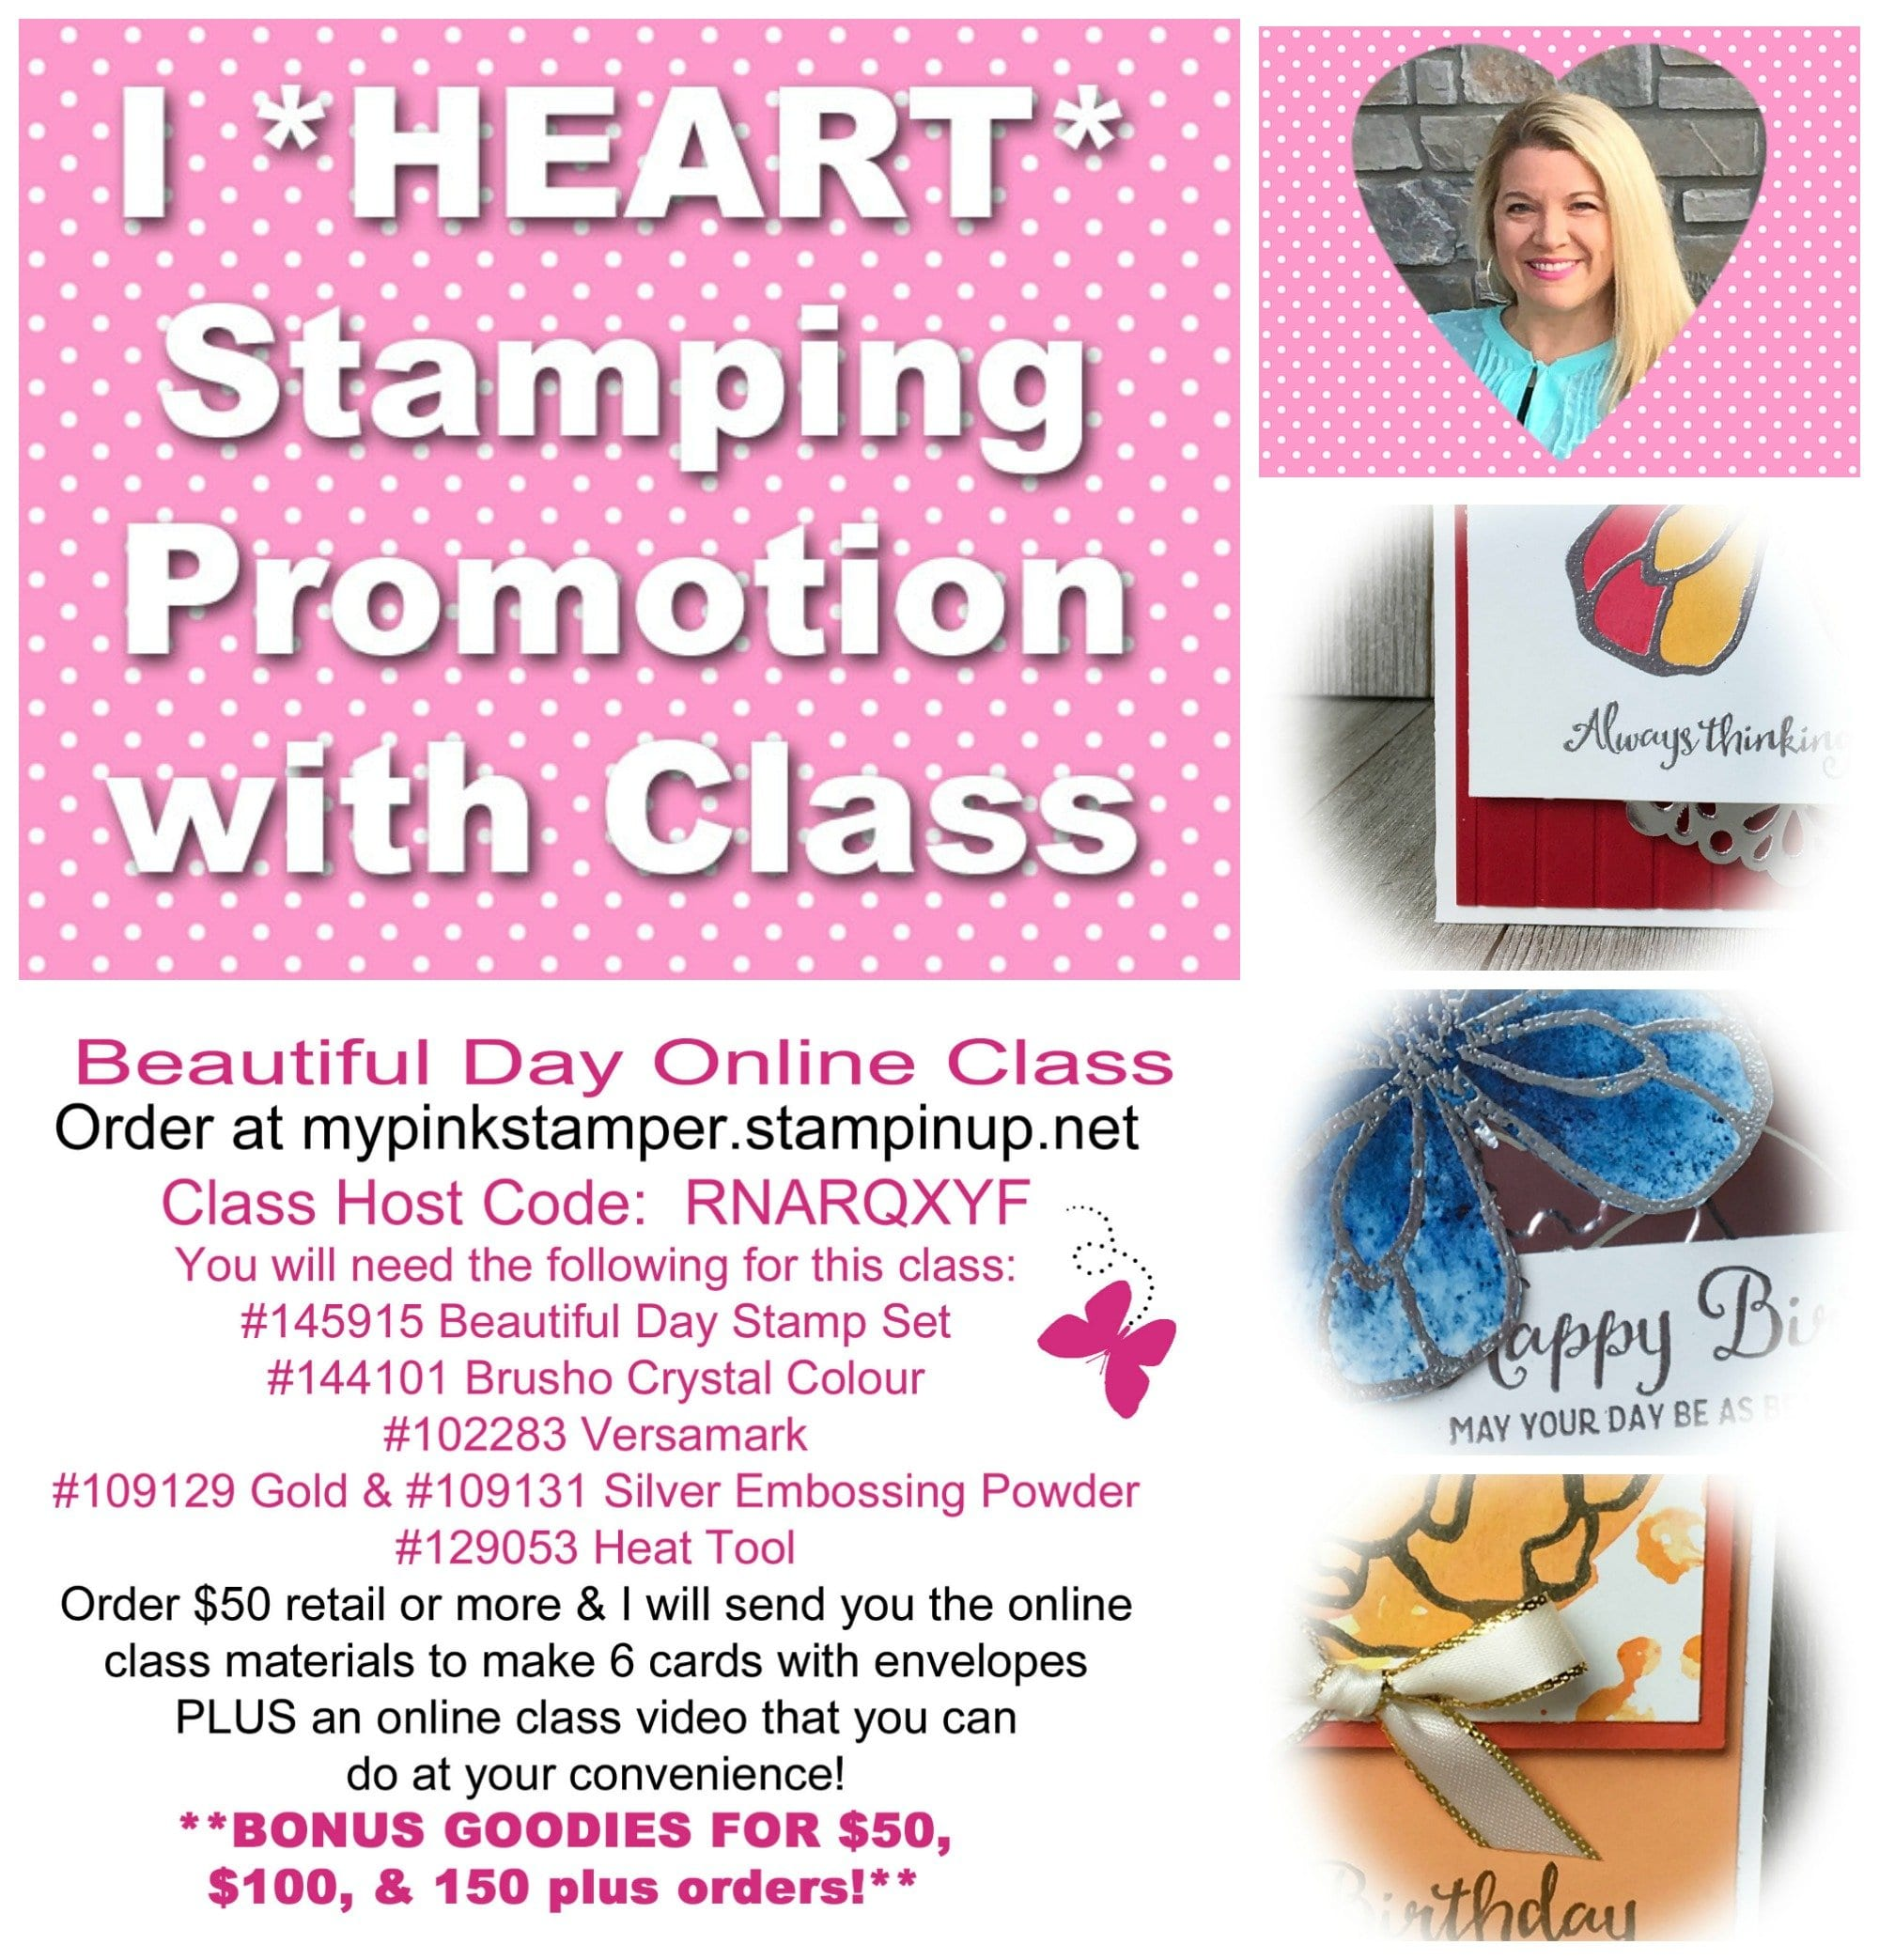 I *HEART* Stamping Promotion with Beautiful Day Online Class!